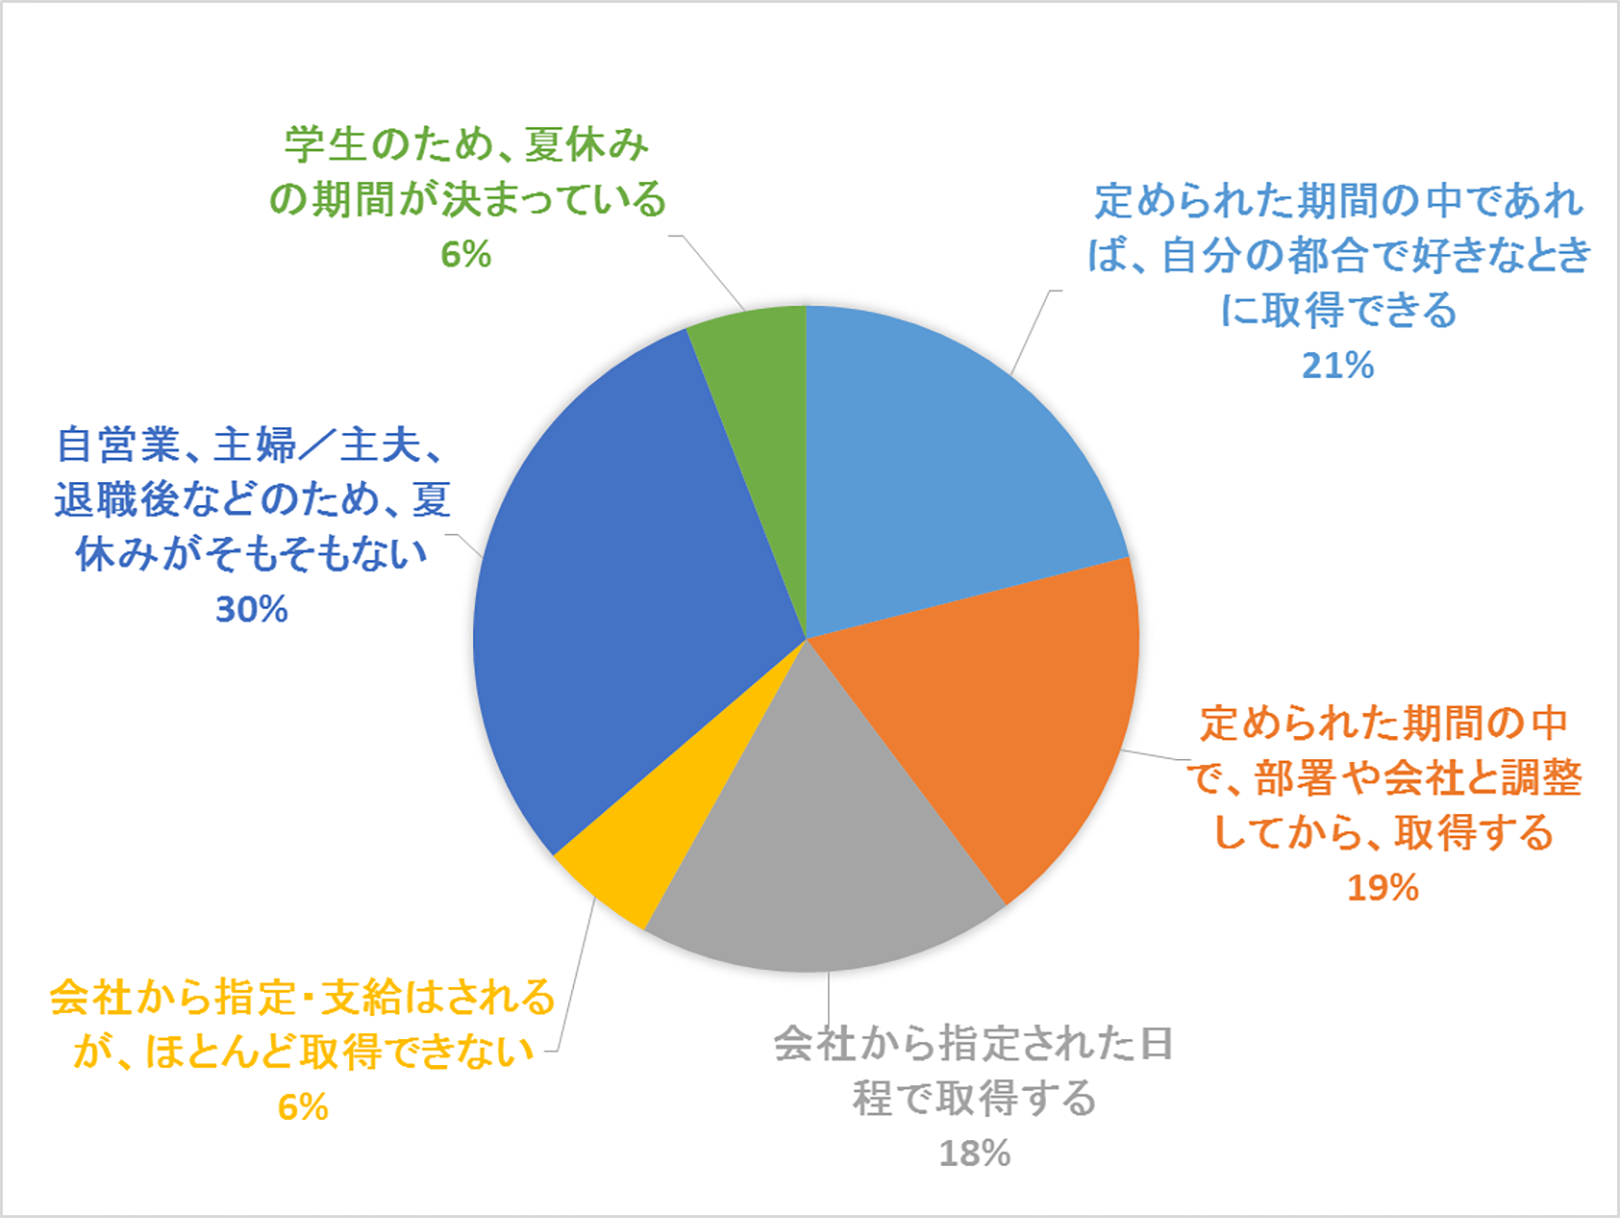 201808-15-fig-01.png